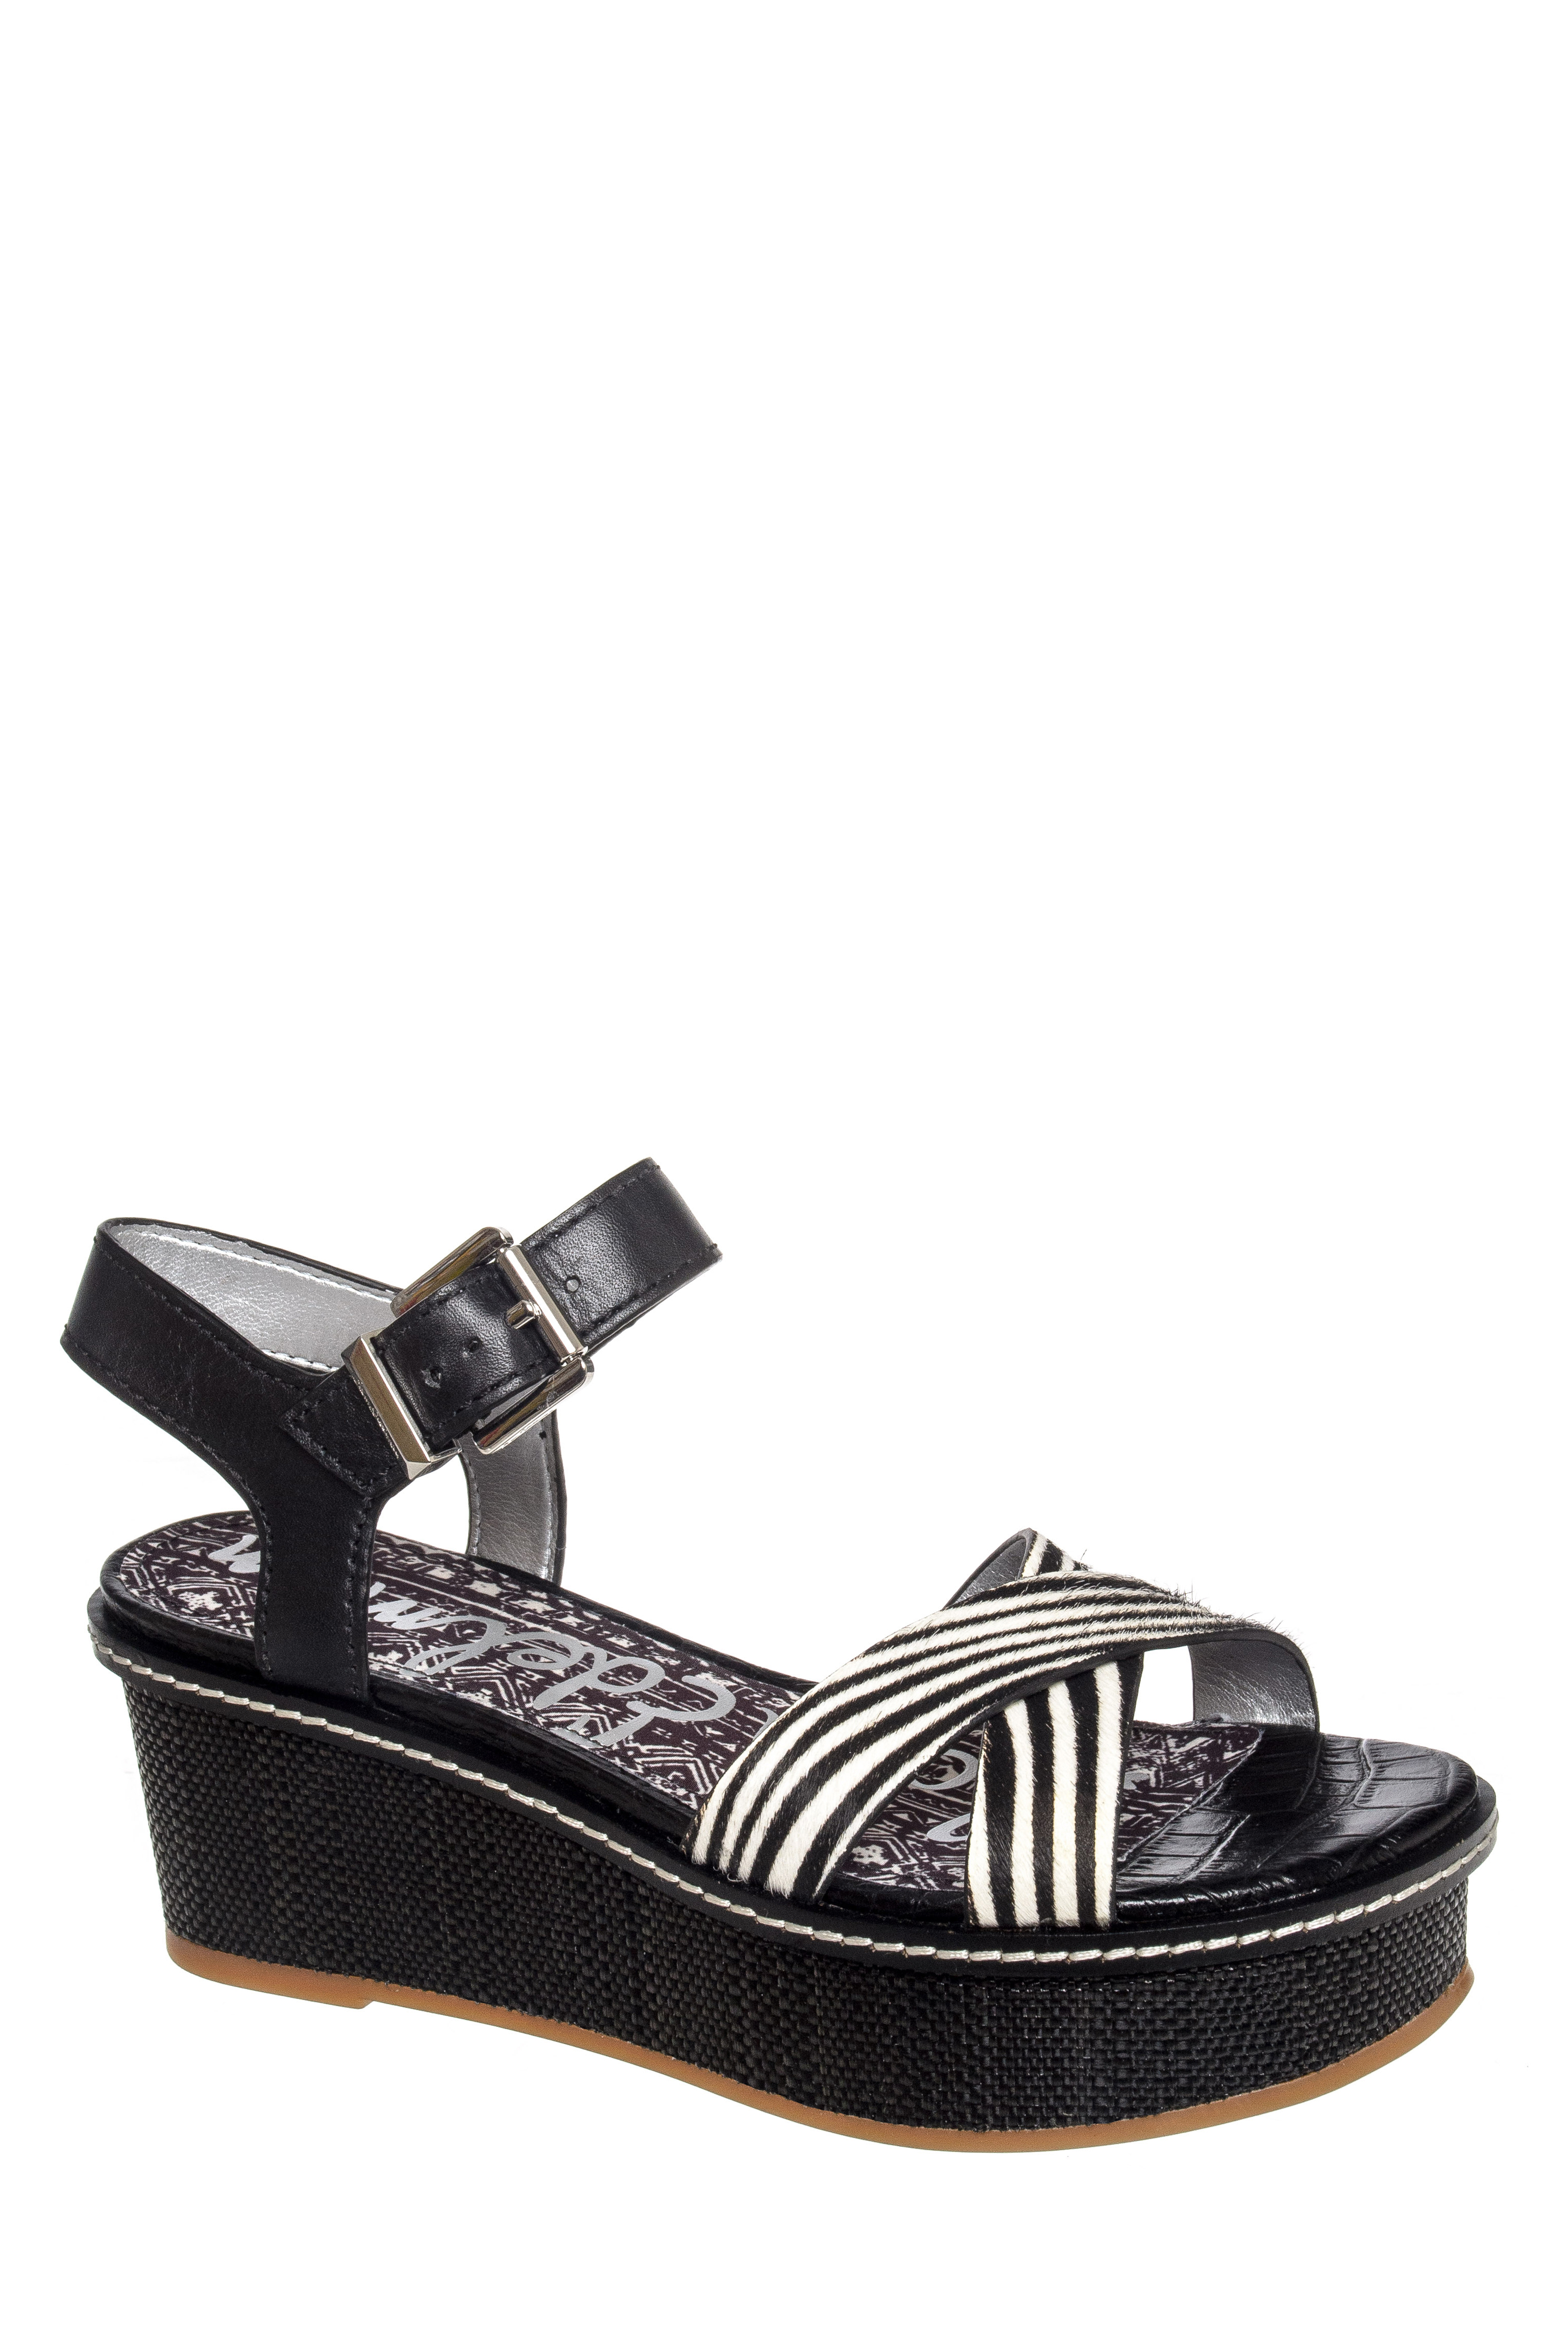 Sam Edelman Tina Platform Wedge Sandals